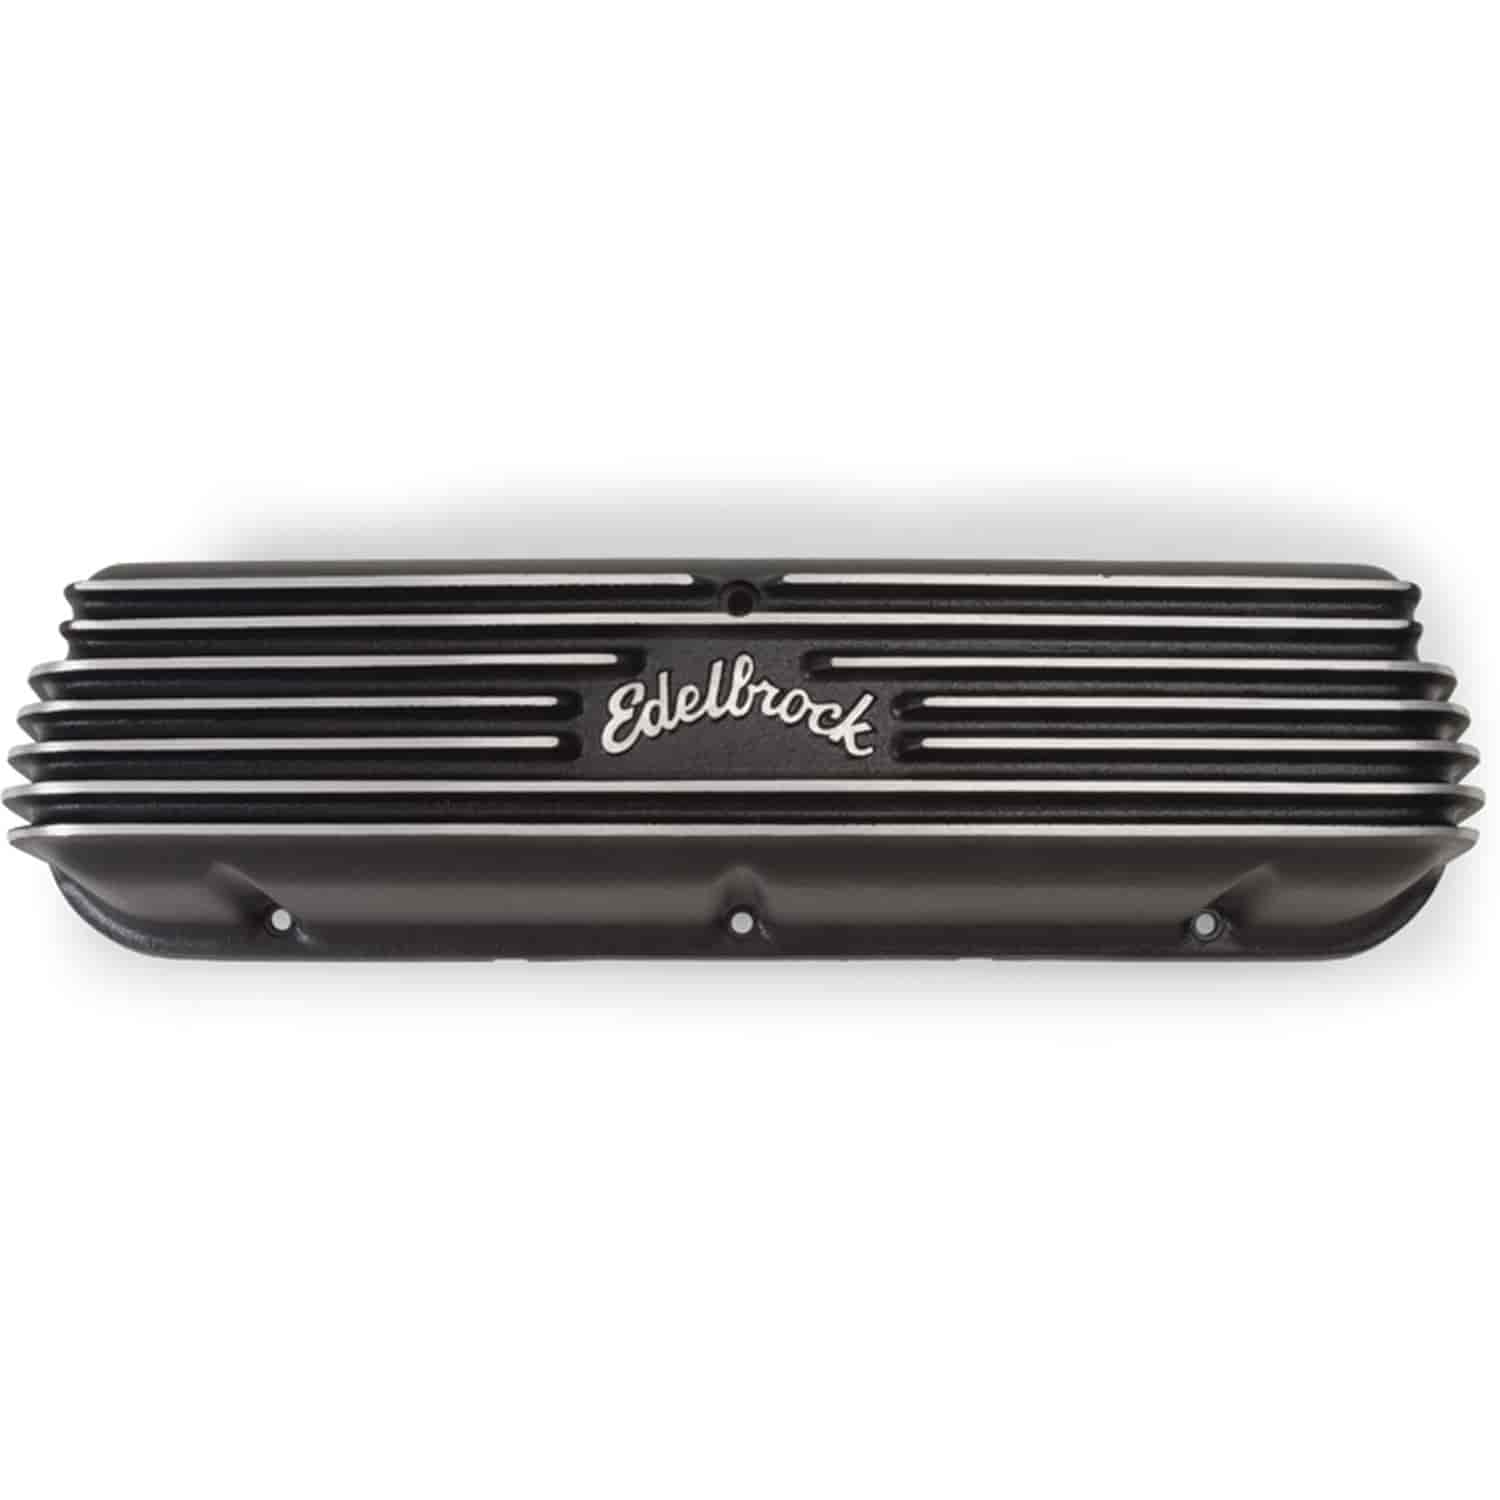 Edelbrock 41603 - Edelbrock Classic Series Valve Covers & Air Cleaners